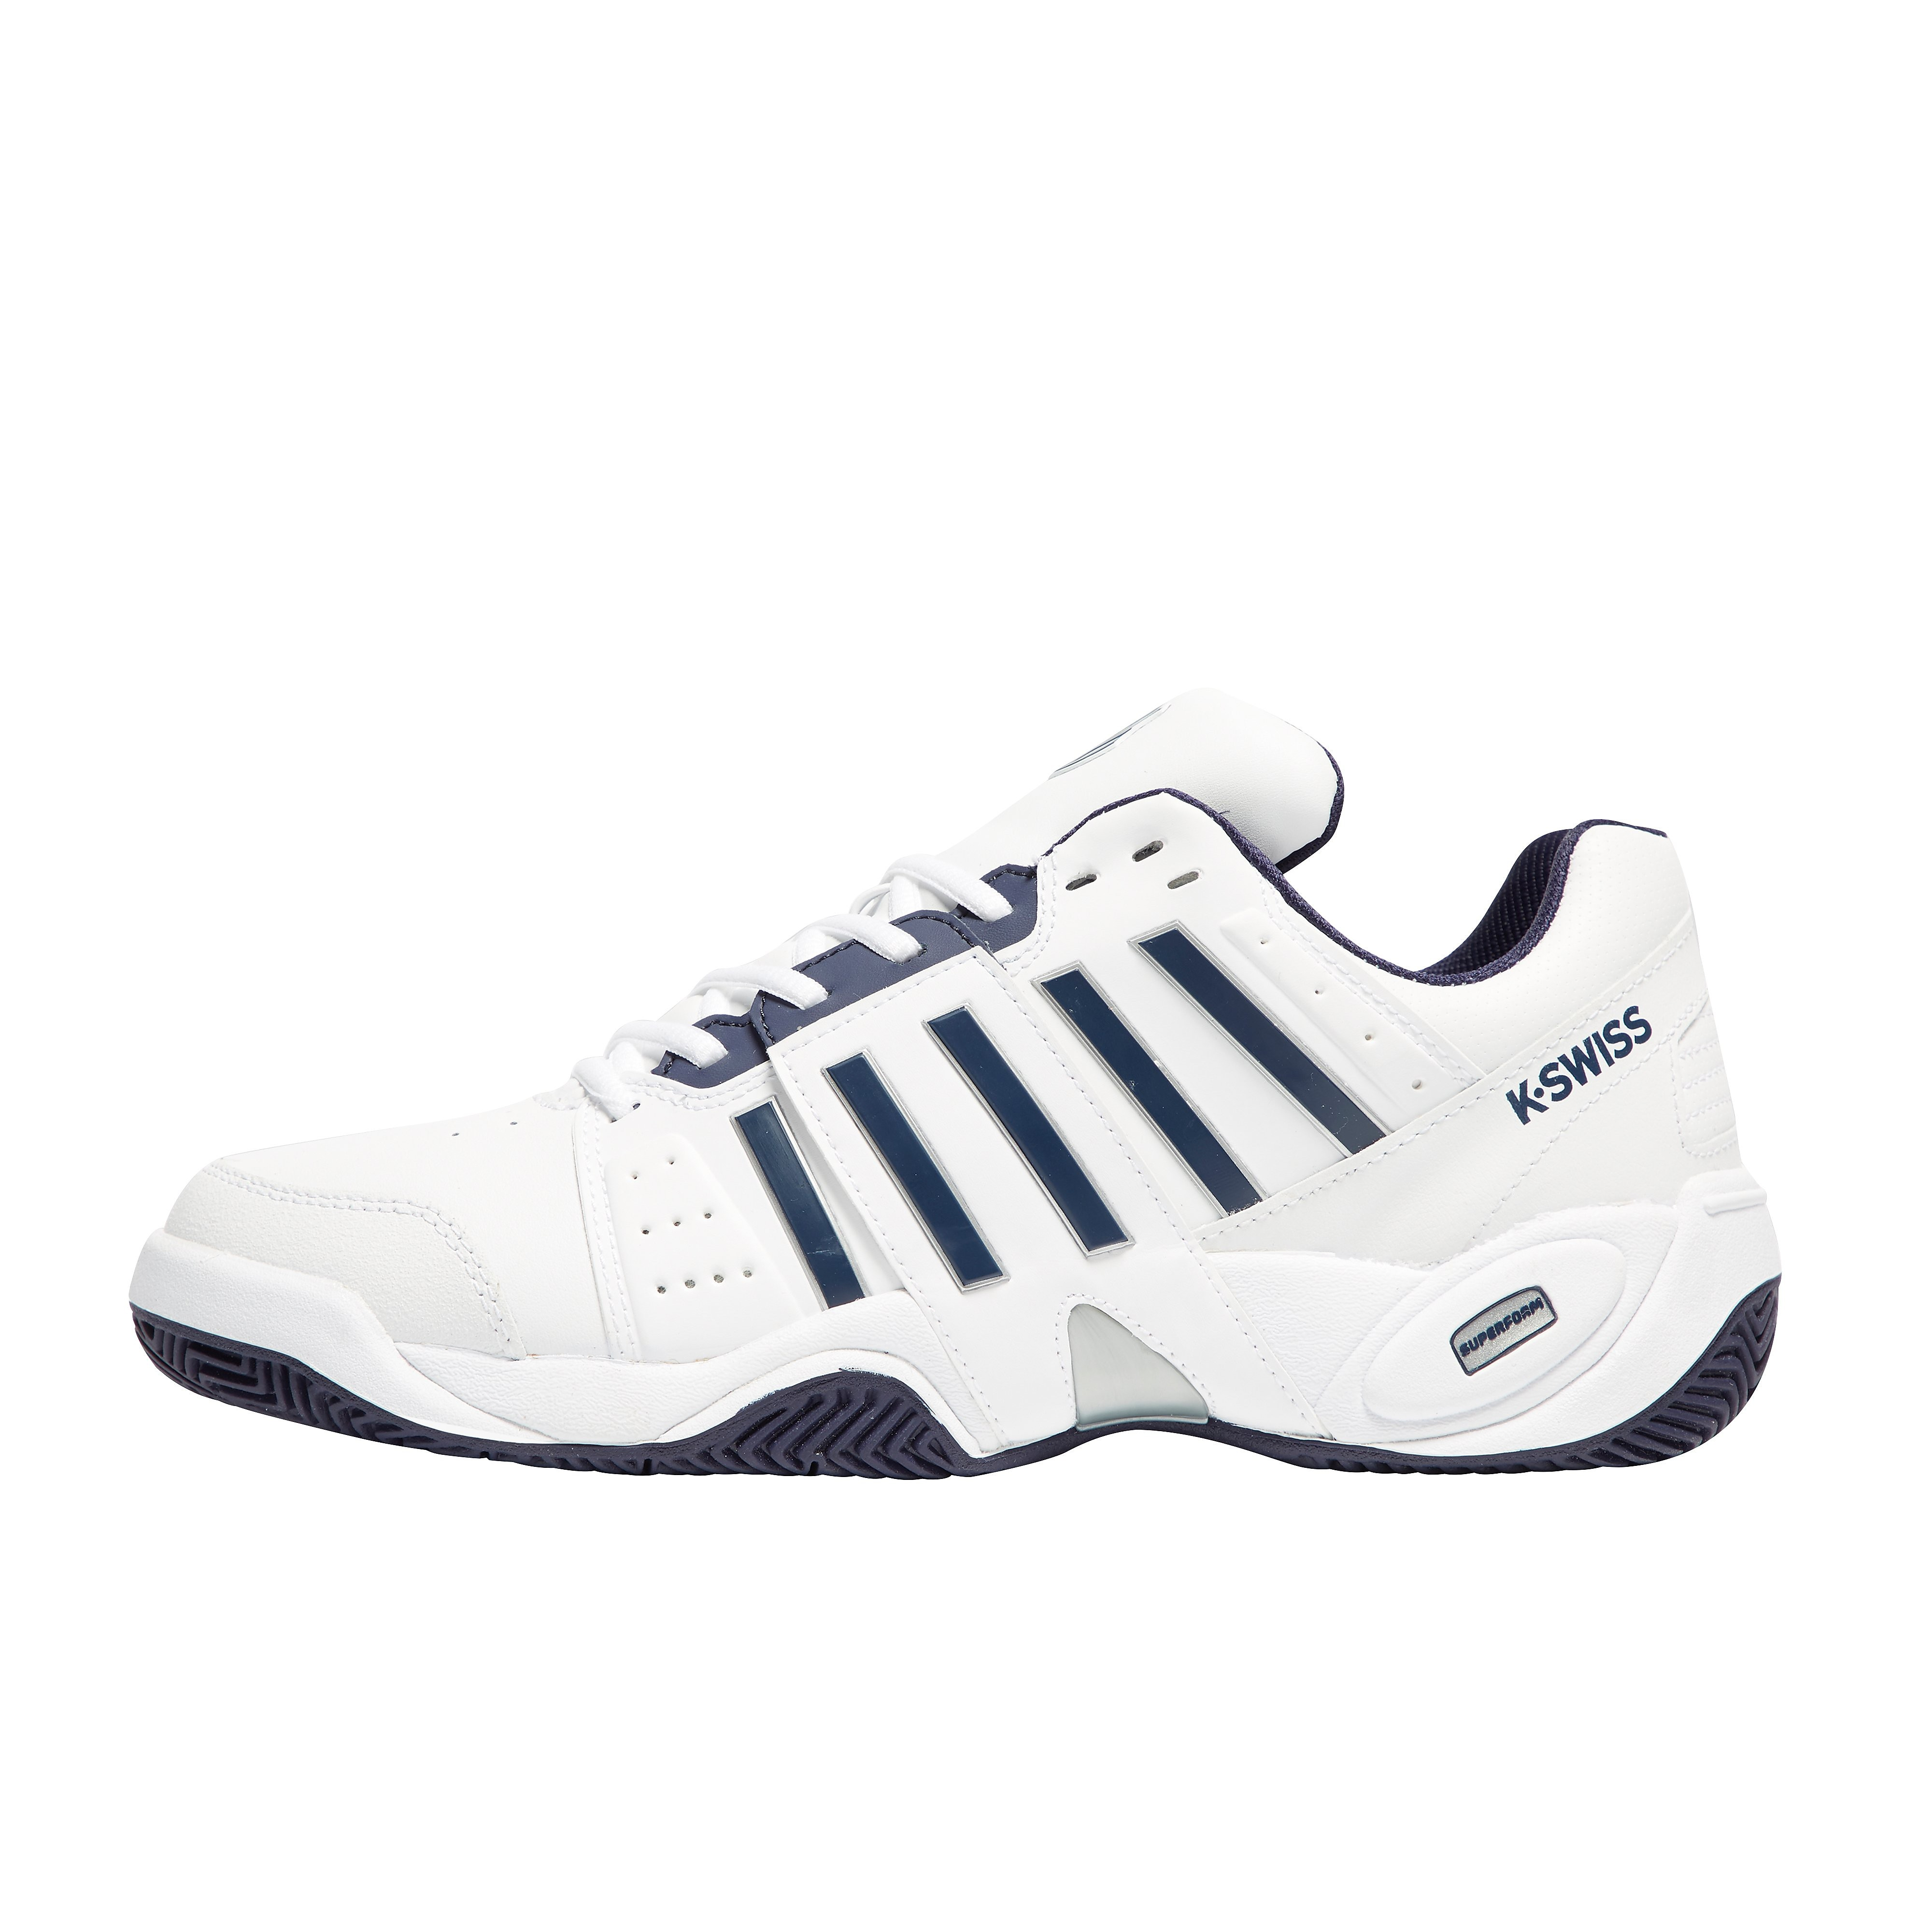 K-Swiss Accomplish III Men's Tennis Shoes